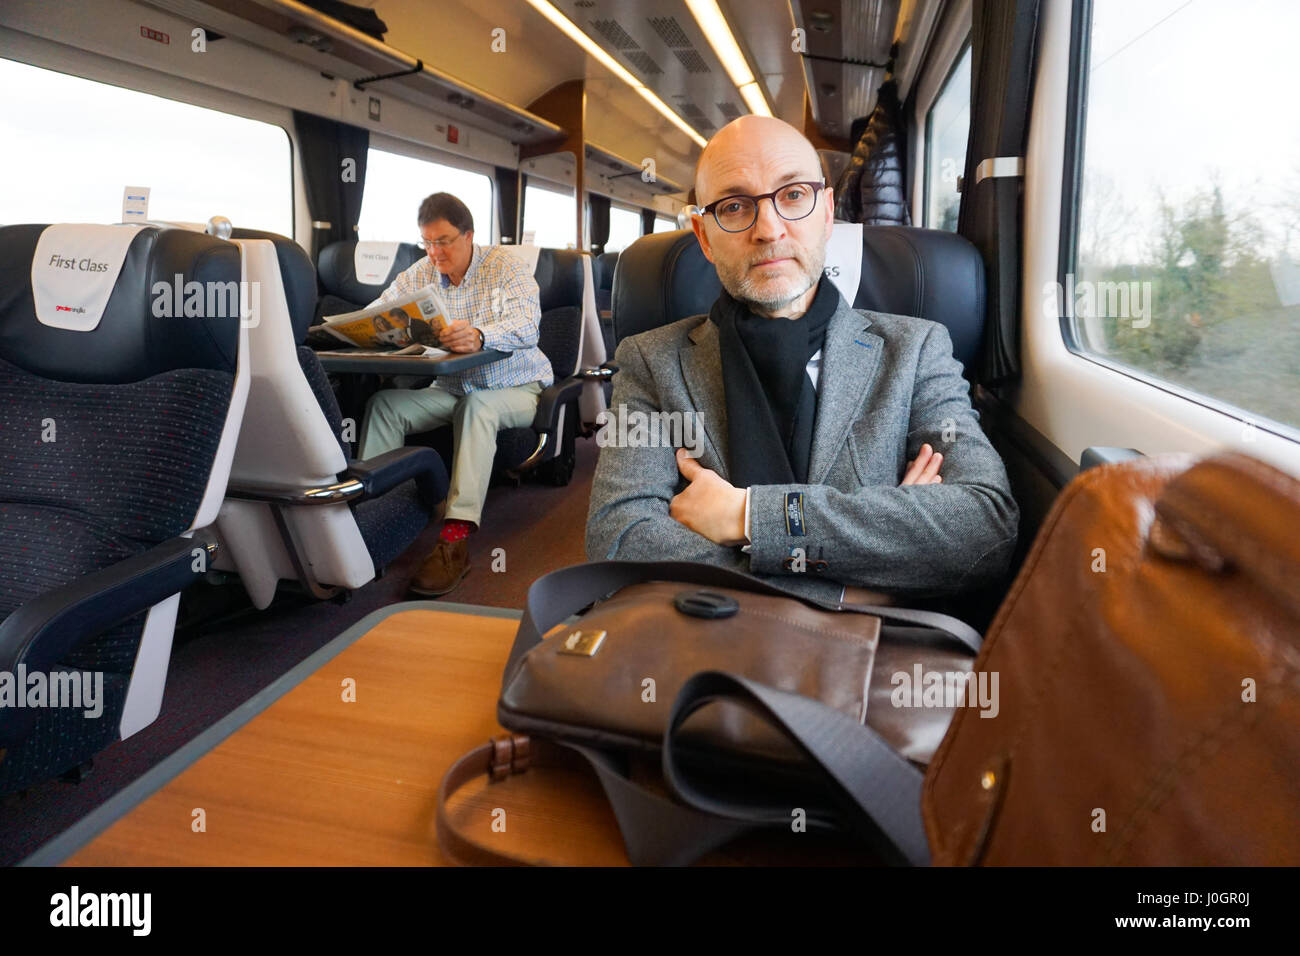 A middle aged male figure sitting on the train wearing jacket and glasses in first class carriage - Stock Image